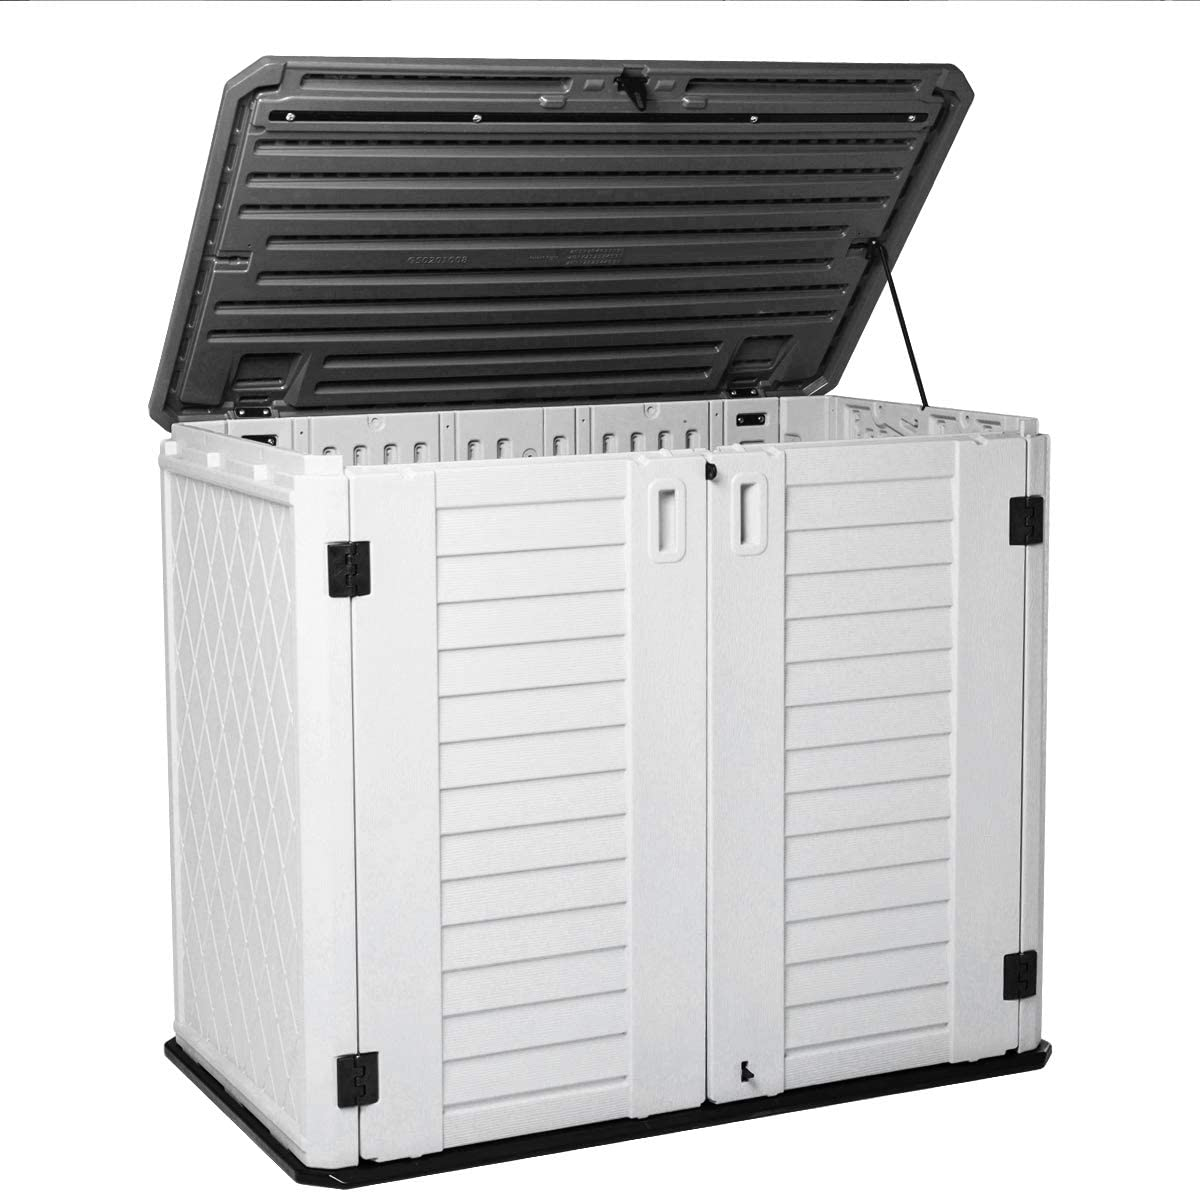 Horizontal Outdoor Garden Storage Shed for Backyards and Patios,